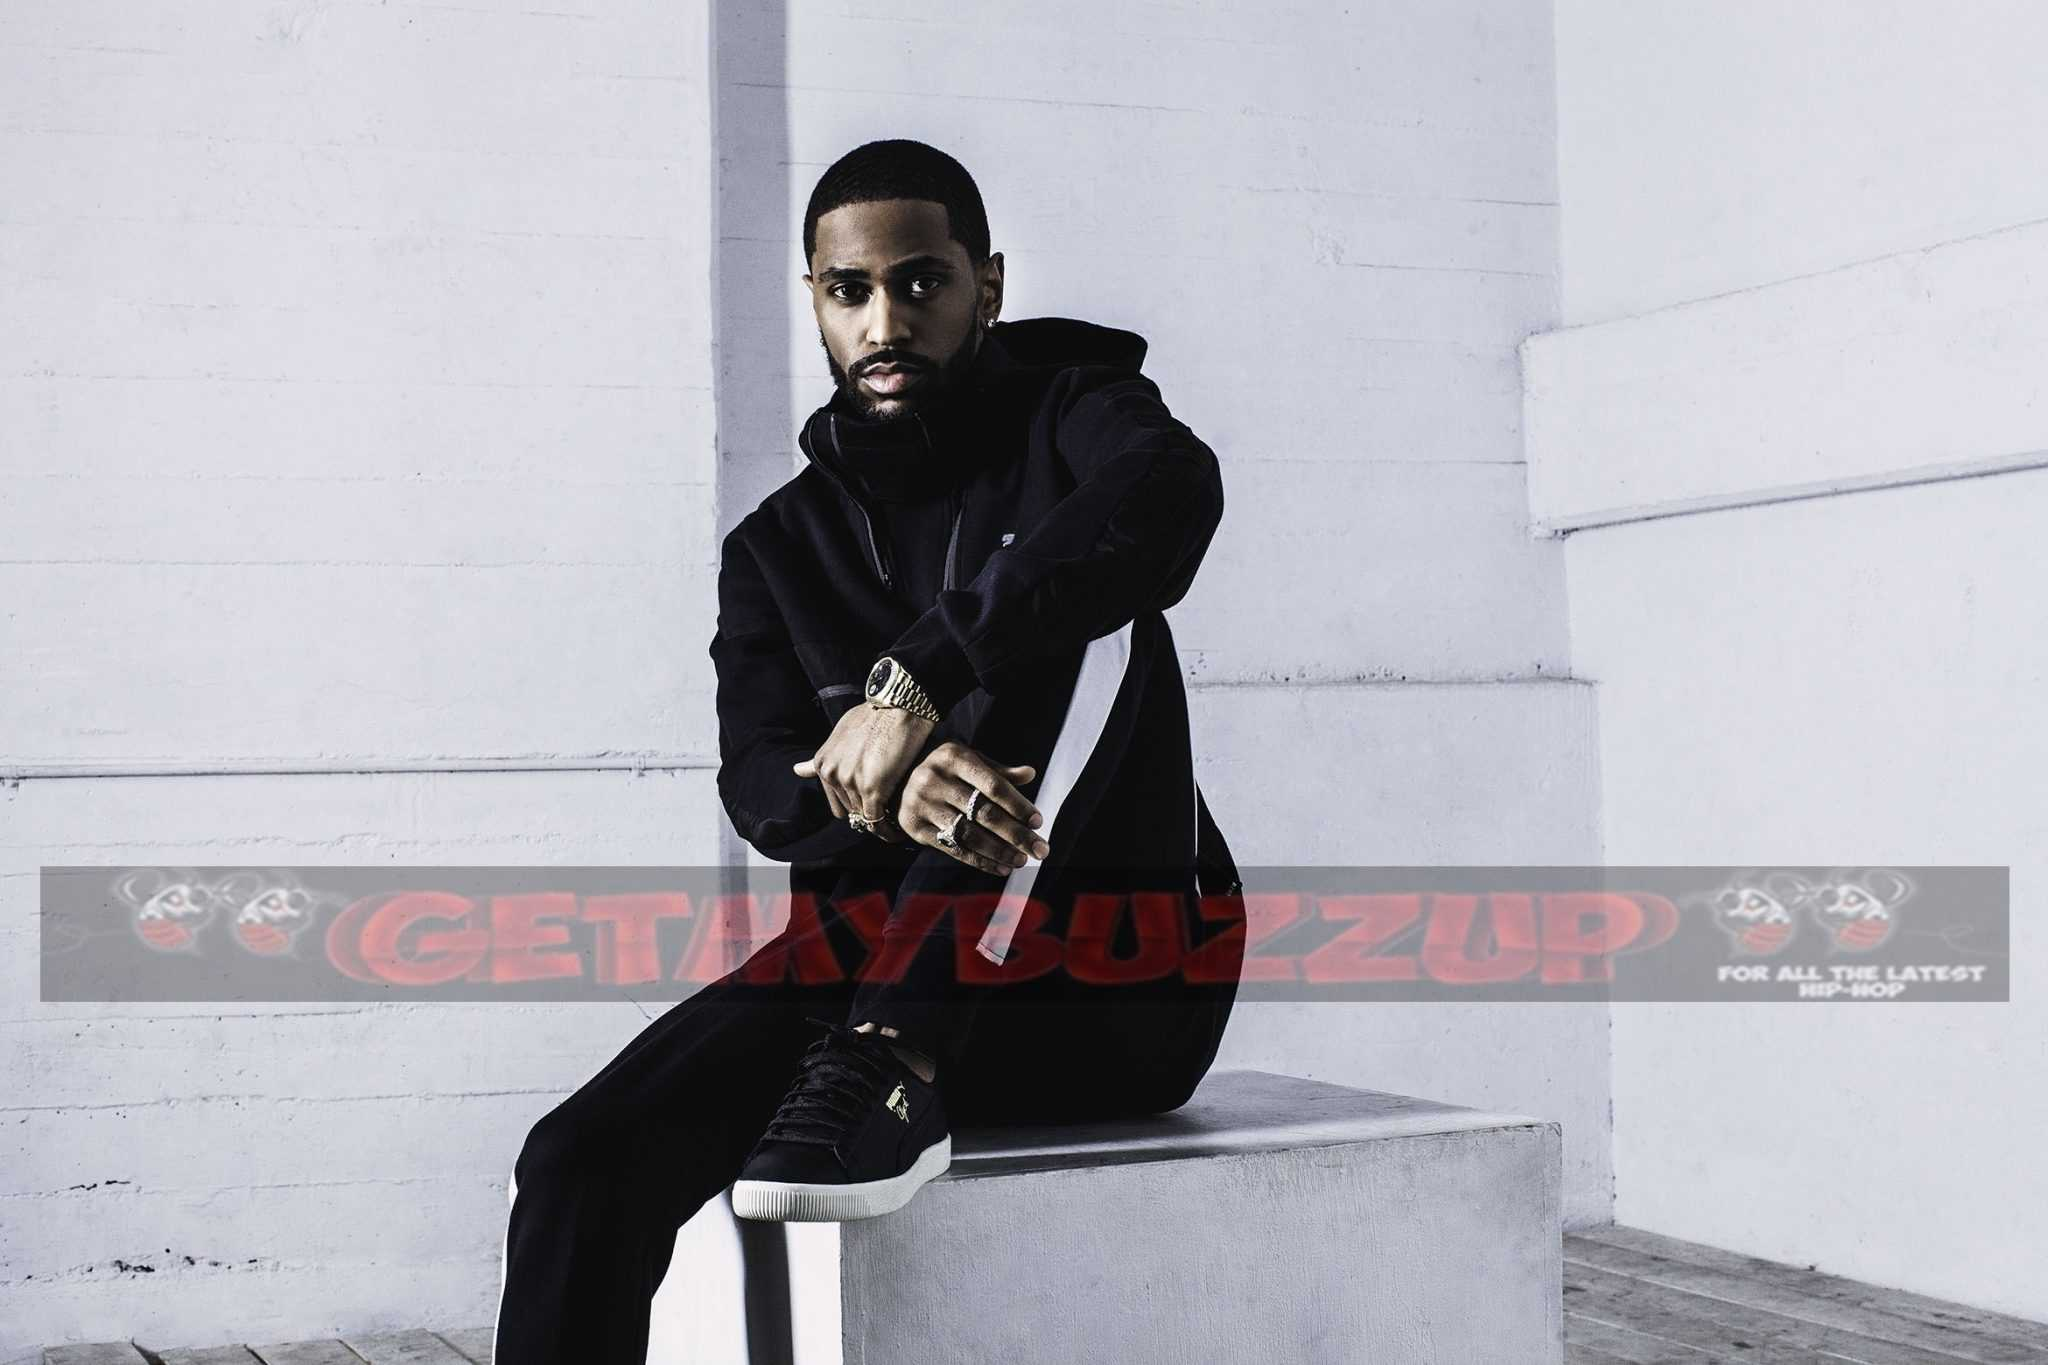 BIG SEAN NAMED AS THE NEW PUMA CREATIVE COLLABORATOR AND GLOBAL AMBASSADOR [FASHION]